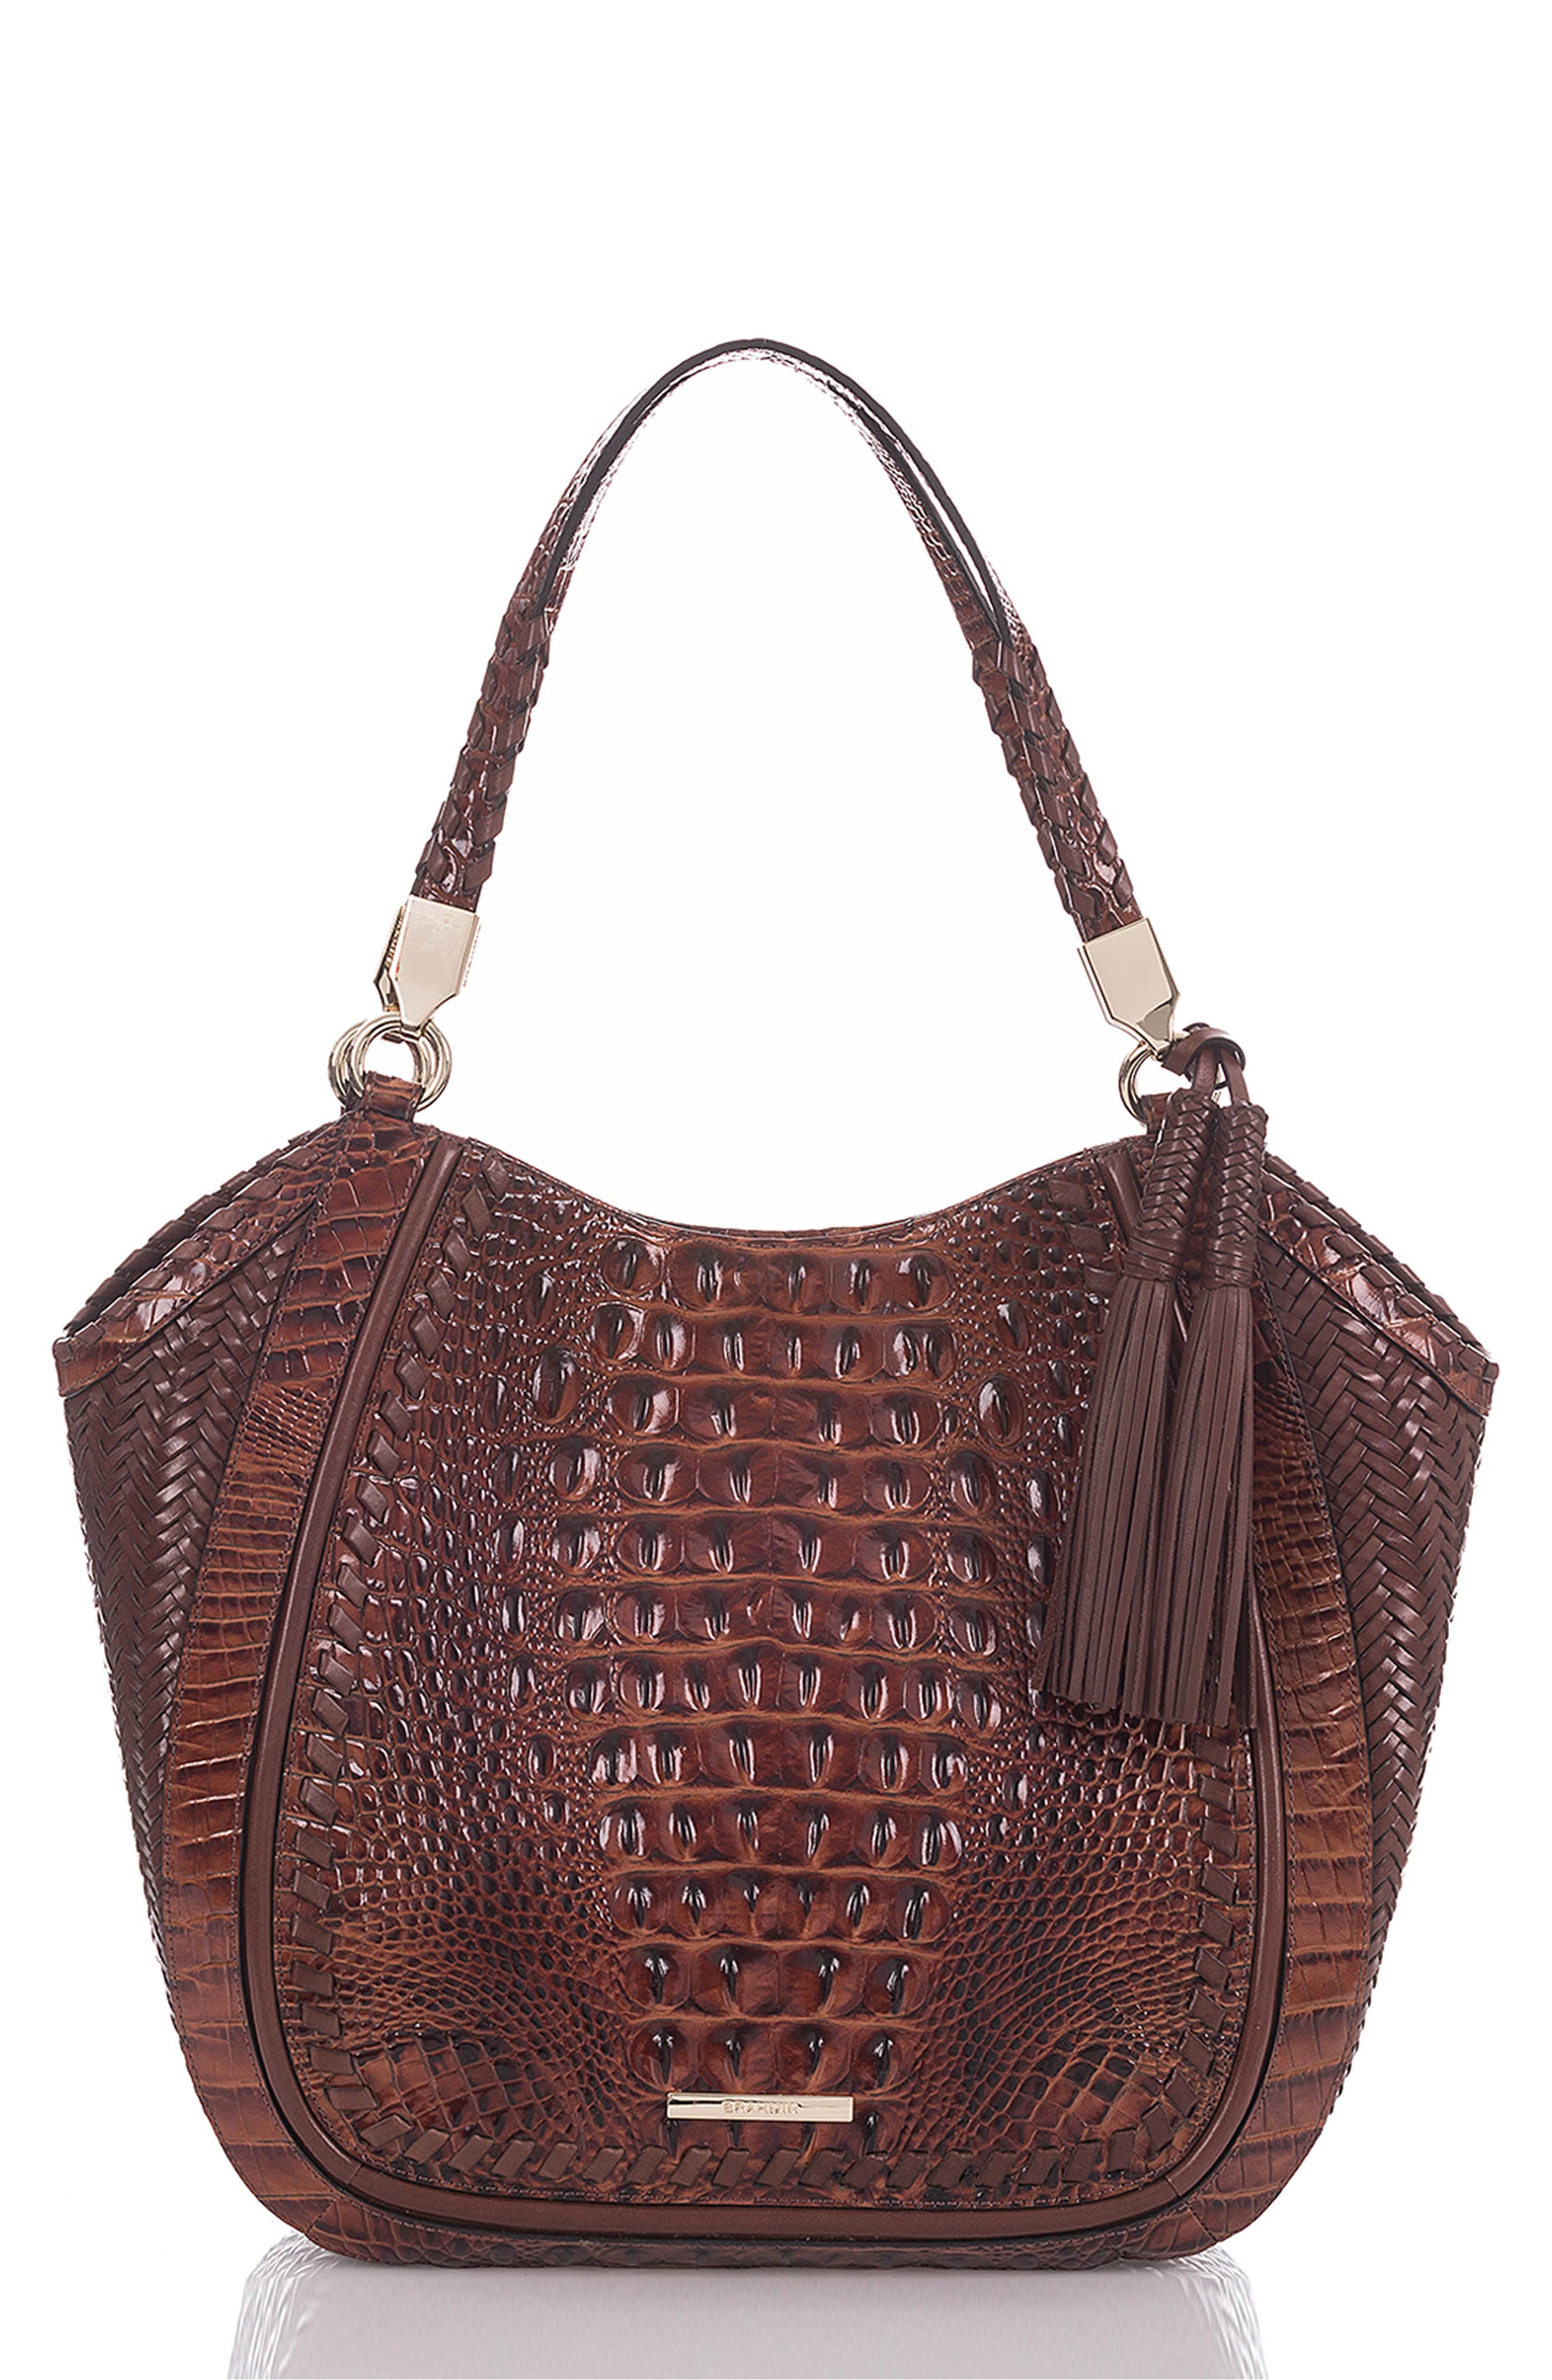 BRAHMIN, Marianna Croc Embossed Leather Tote, Main thumbnail 1, color, 200